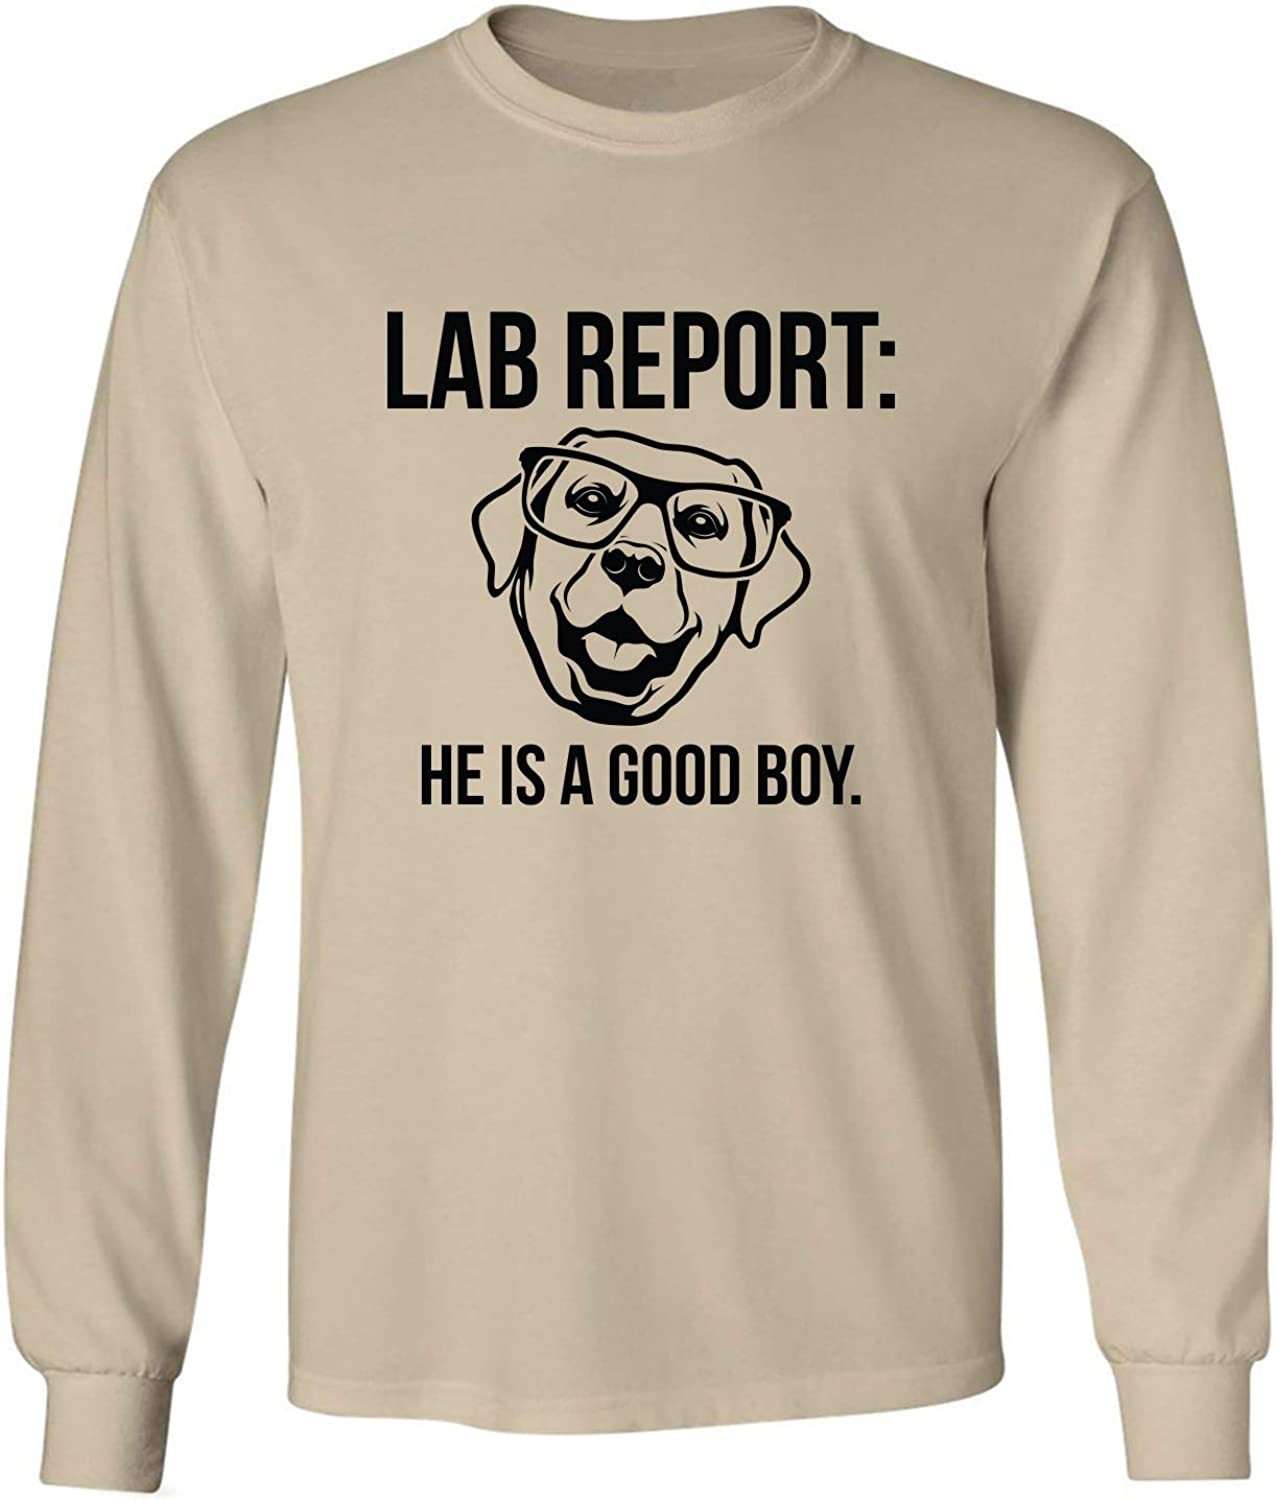 Lab Report Adult Long Sleeve T-Shirt in Sand - XXXXX-Large